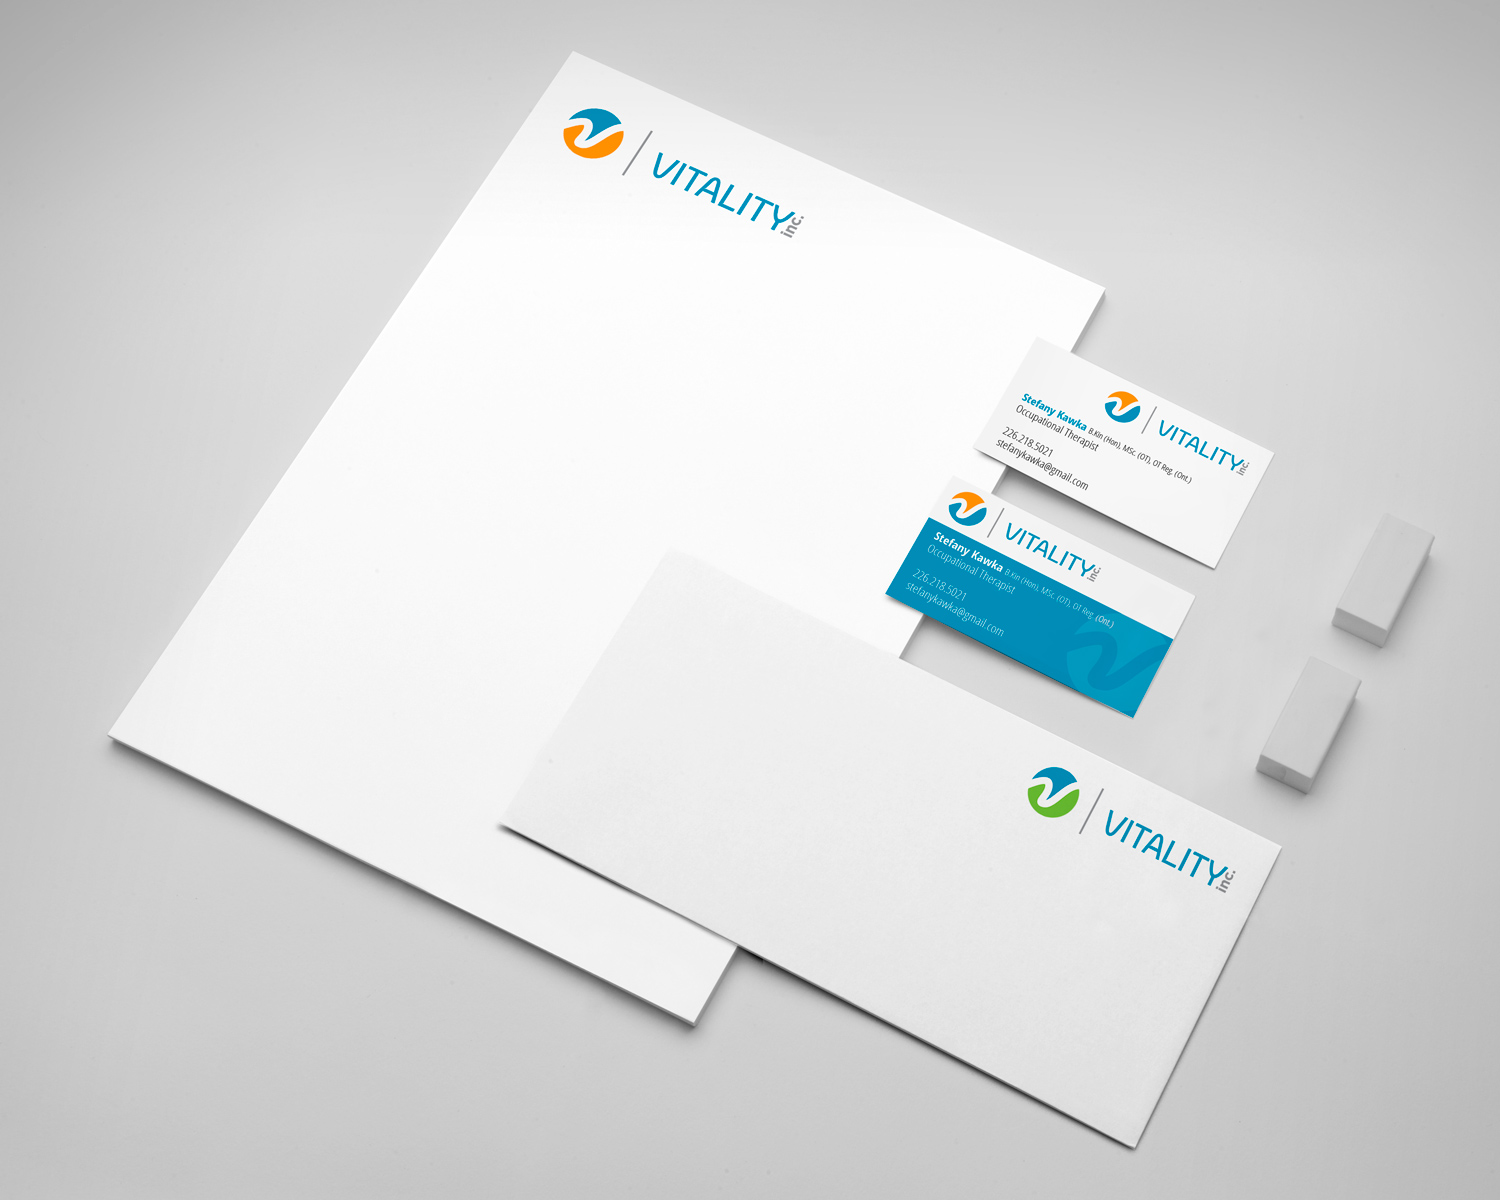 Vitality logo and stationery